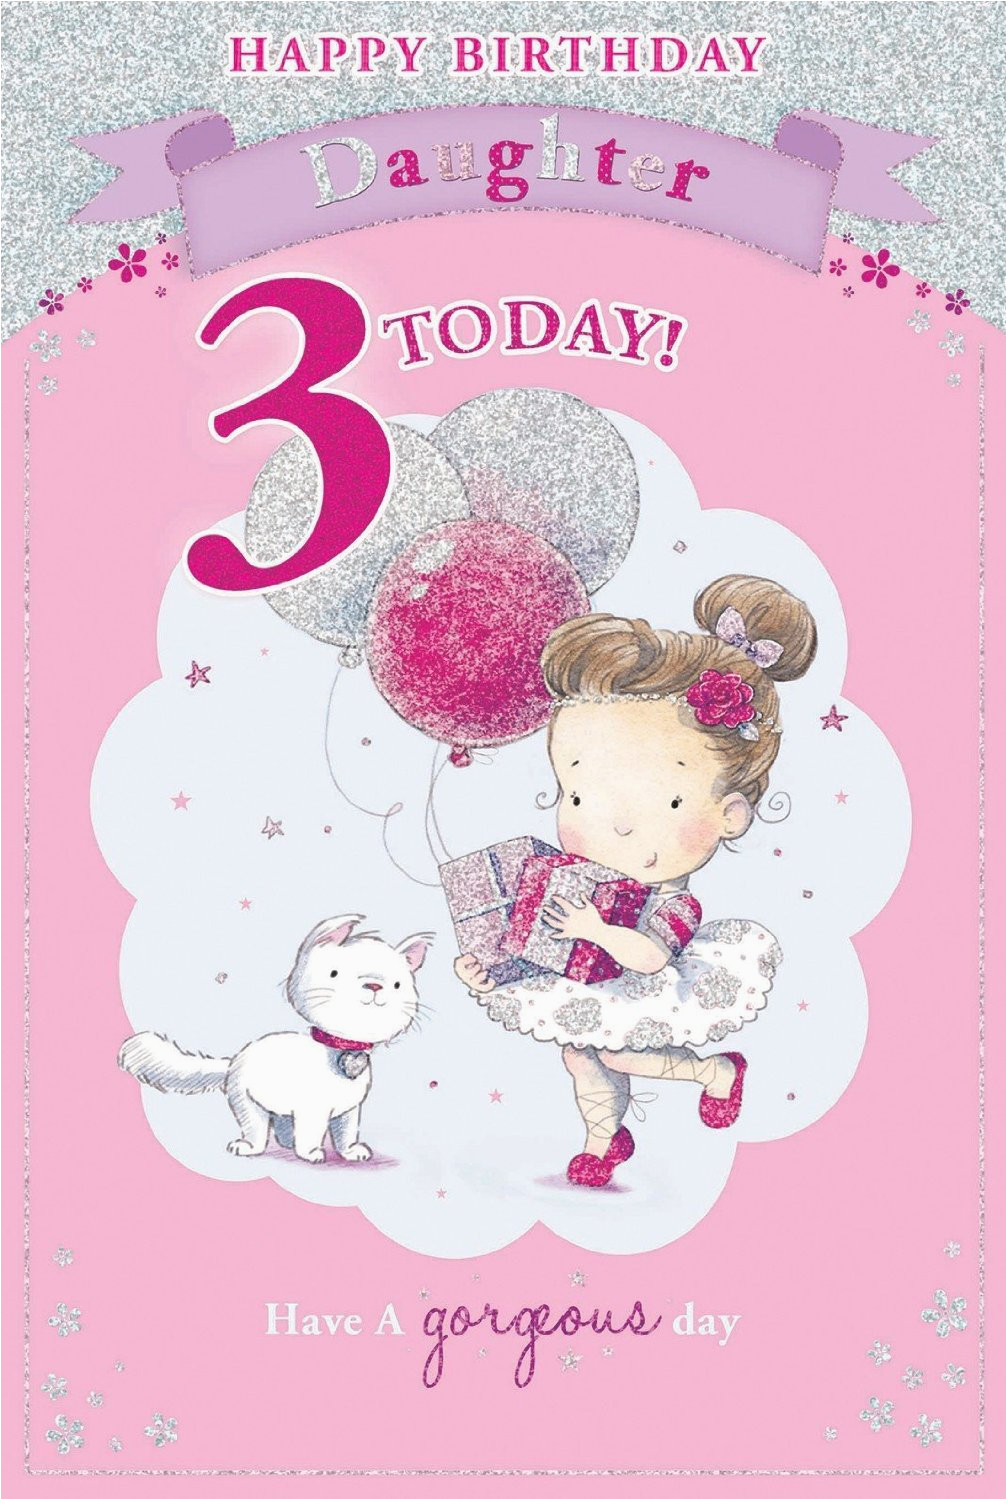 3rd Birthday Card Girl Daughter S 3rd Birthday Card 3 today Little Girl with